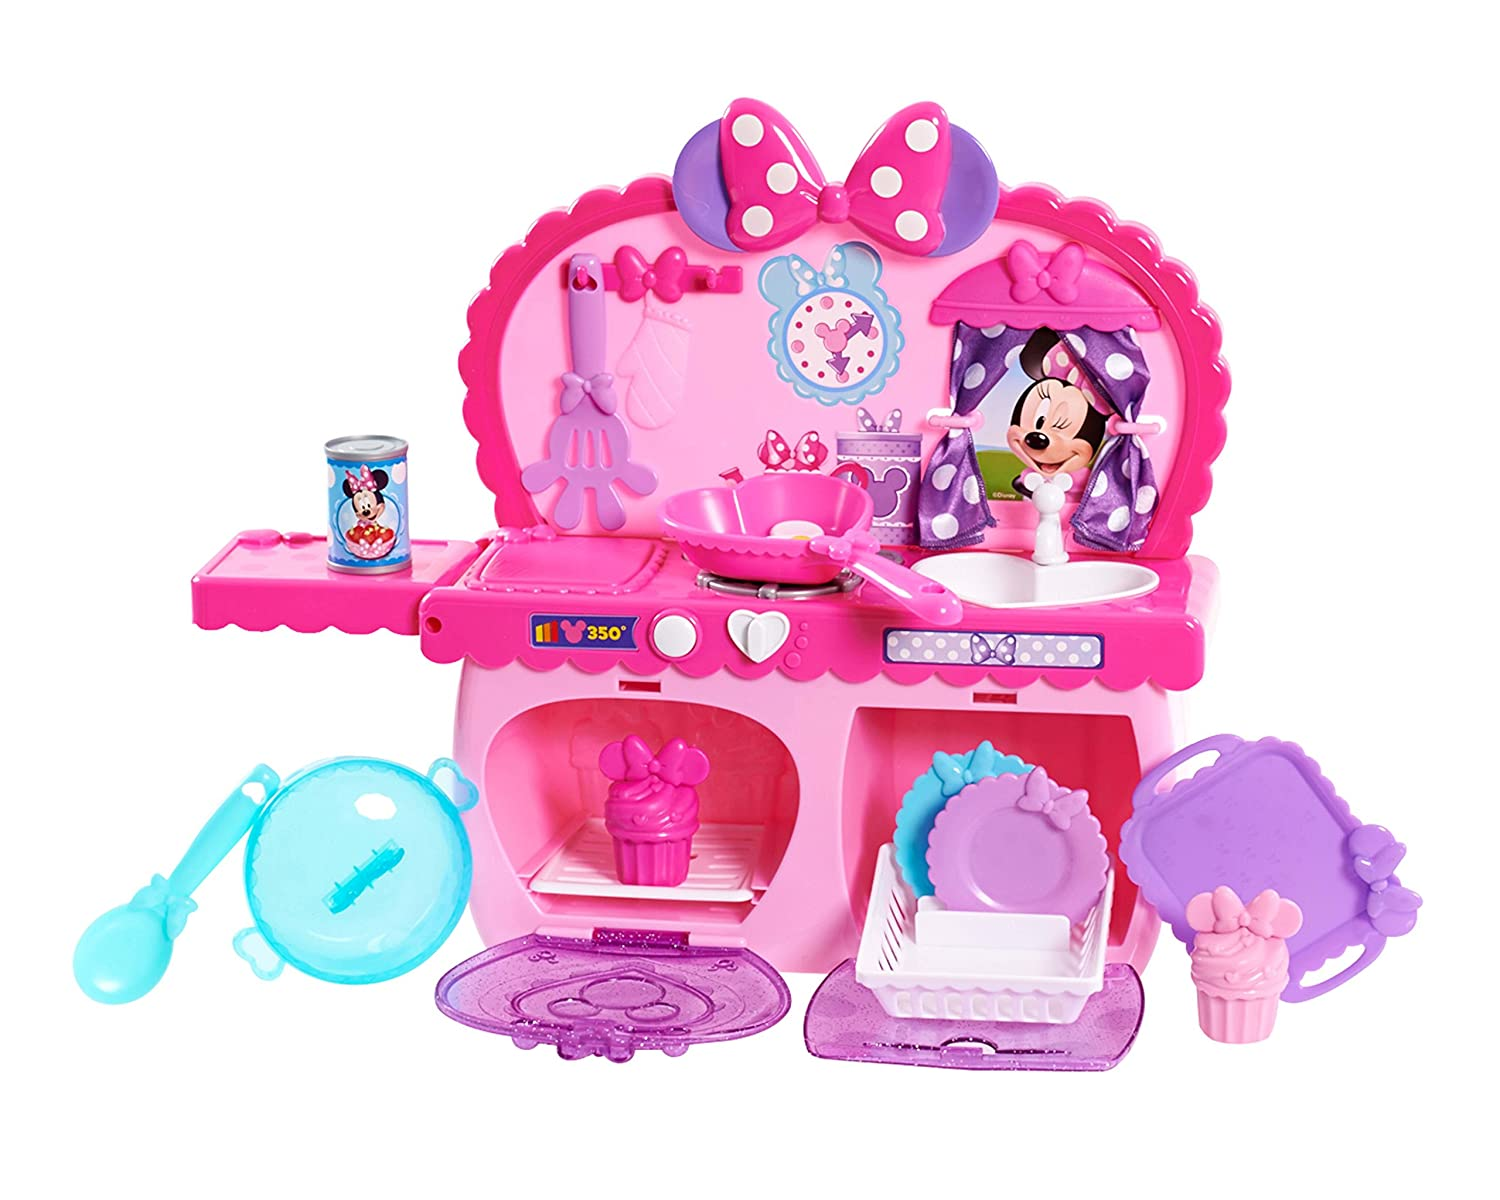 Kitchen Toys For Girls : These minnie mouse toys for girls are the best